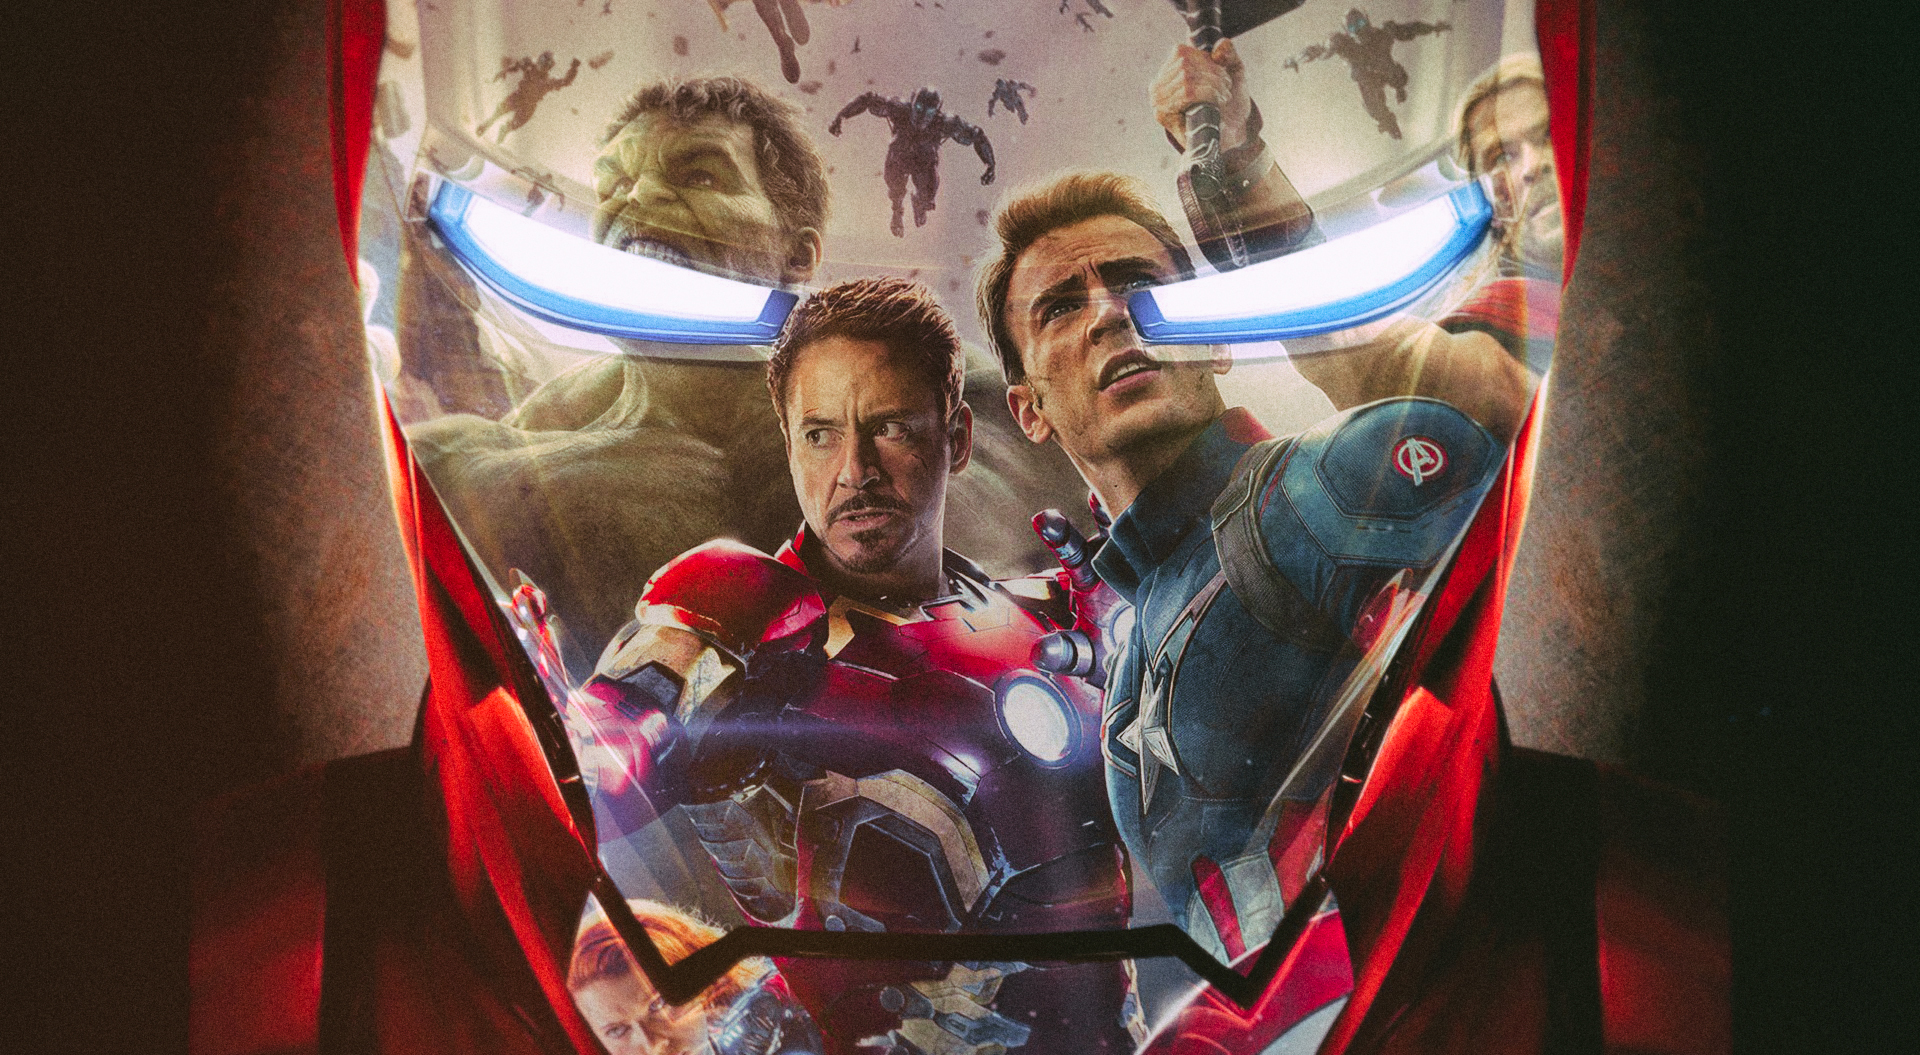 Avengers Age of Ultron Poster Cover Review